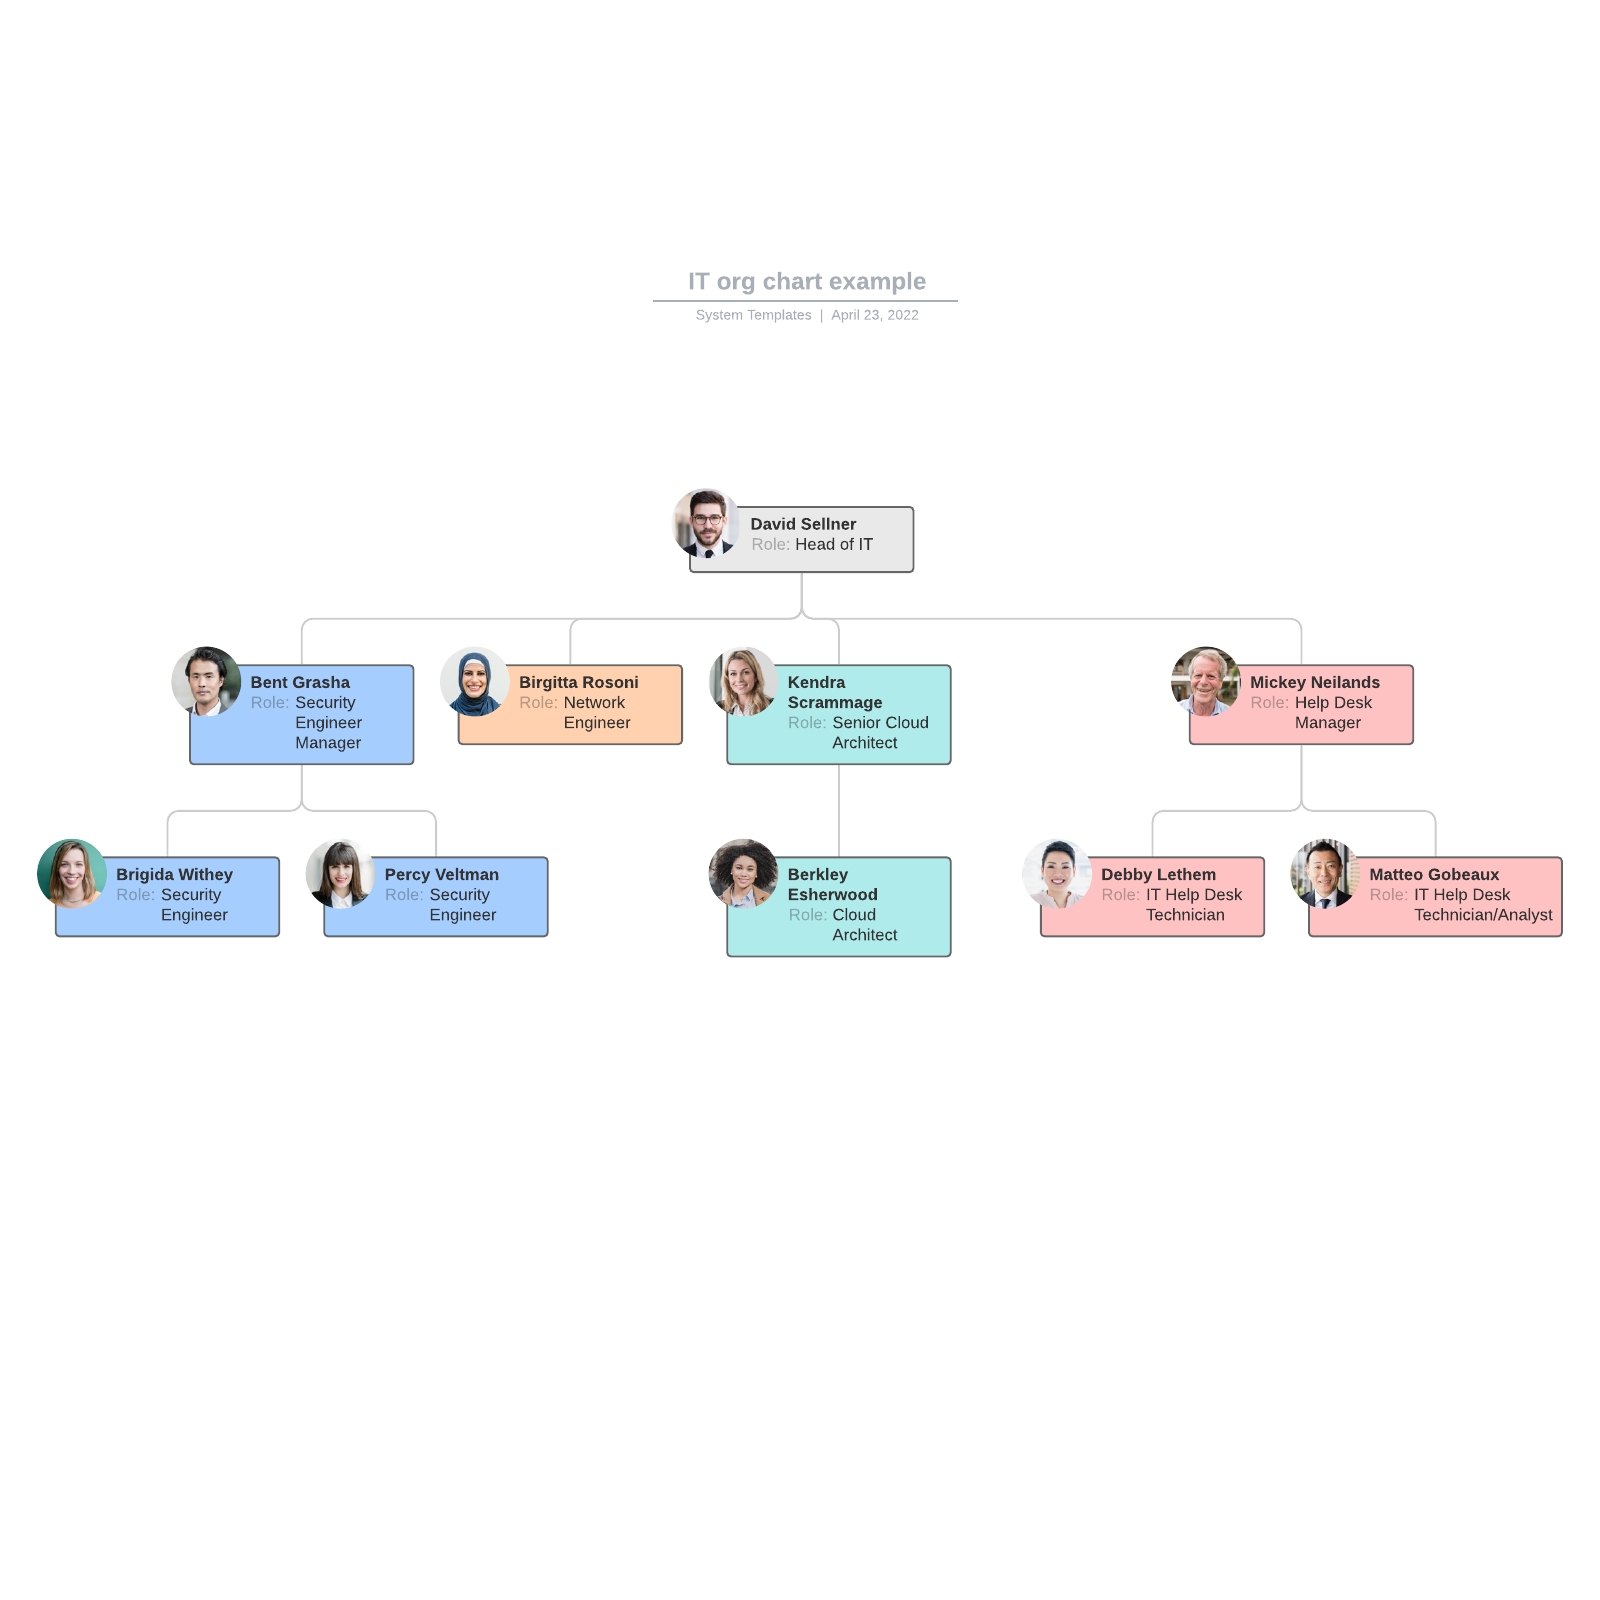 IT org chart example